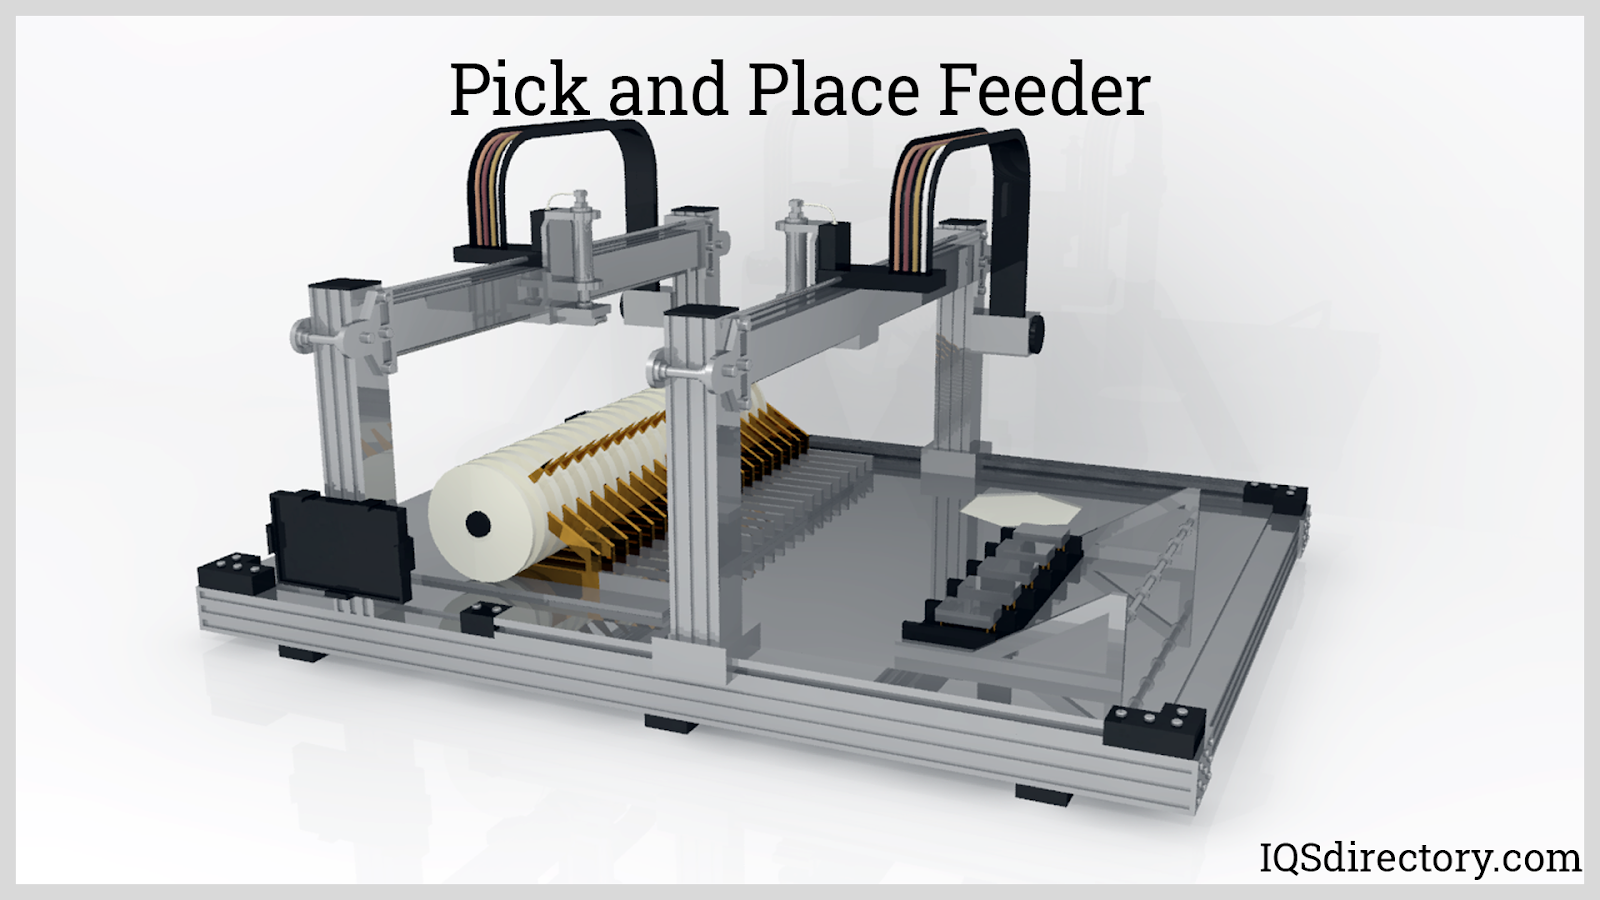 Pick and Place Feeder